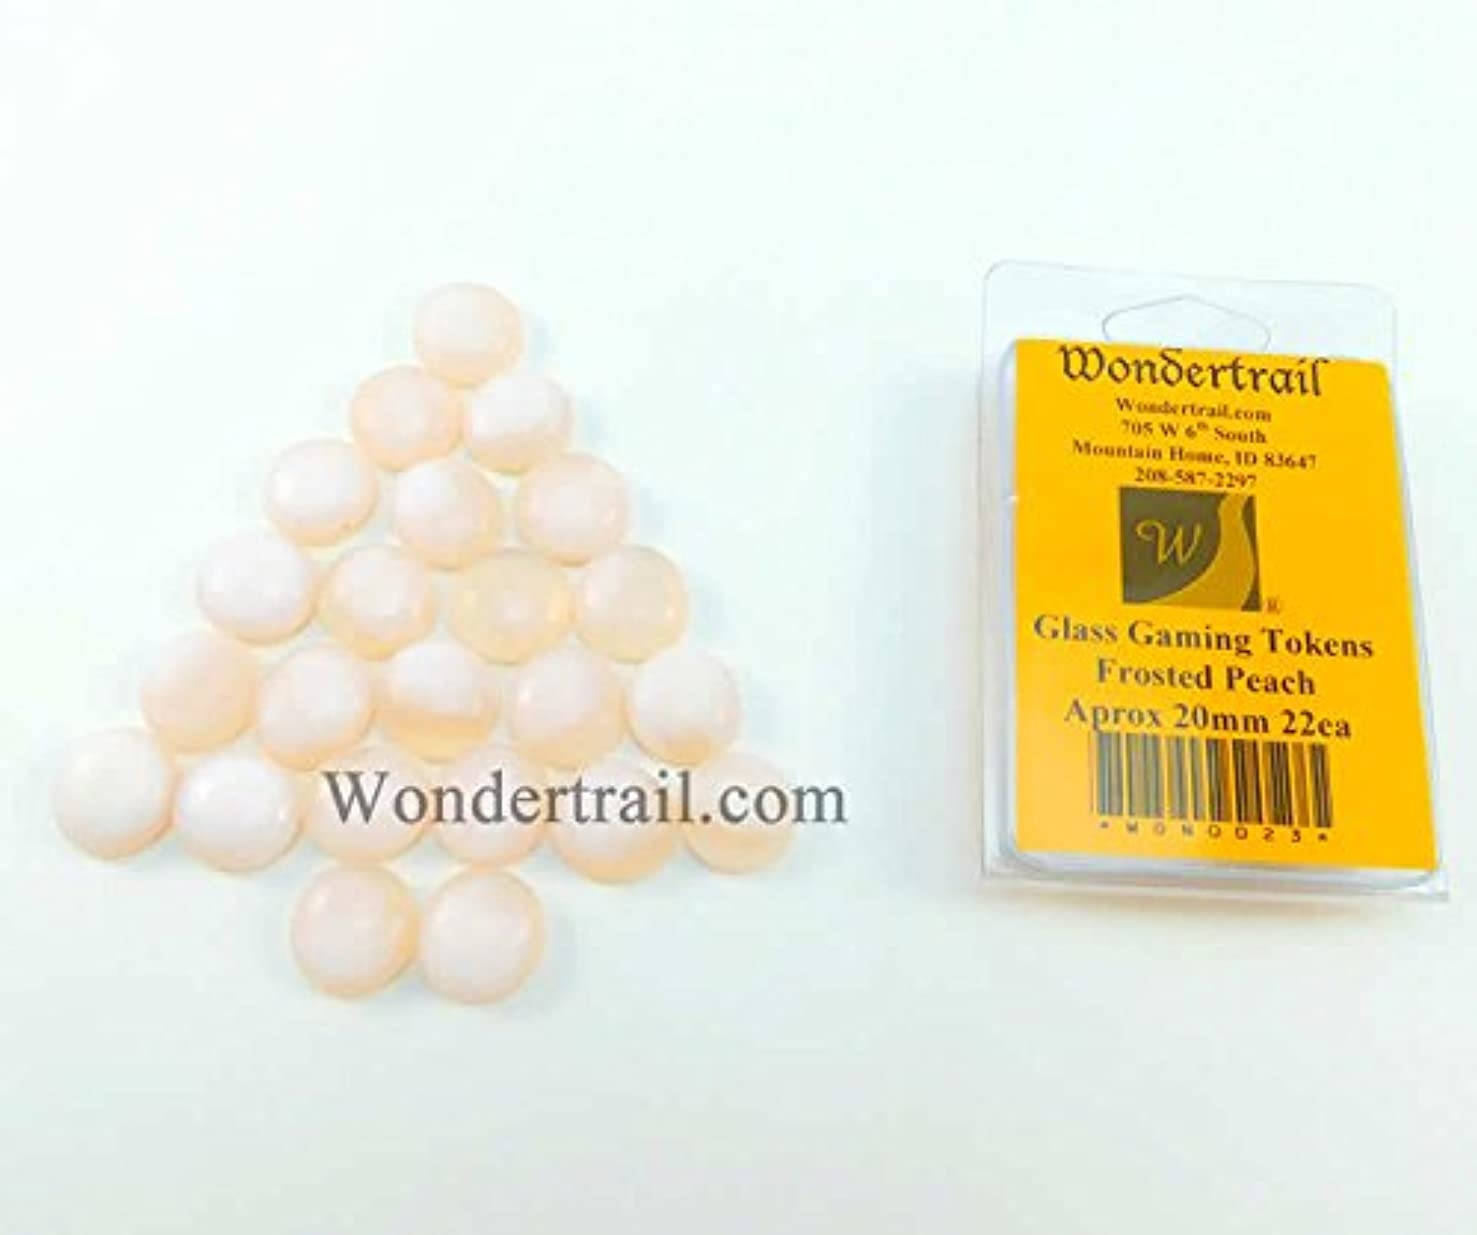 Frost Peach Gaming Counter Tokens Aprox 20mm Pack of 22 Wondertrail WON0023